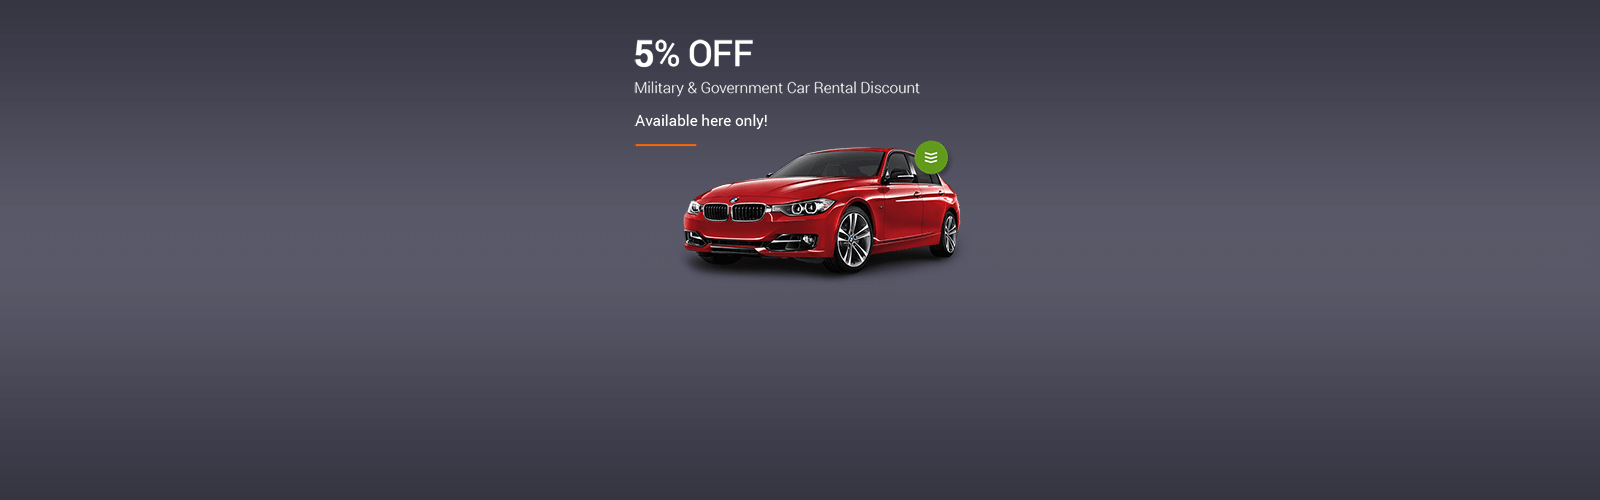 Military & Government Car Rental Coupons